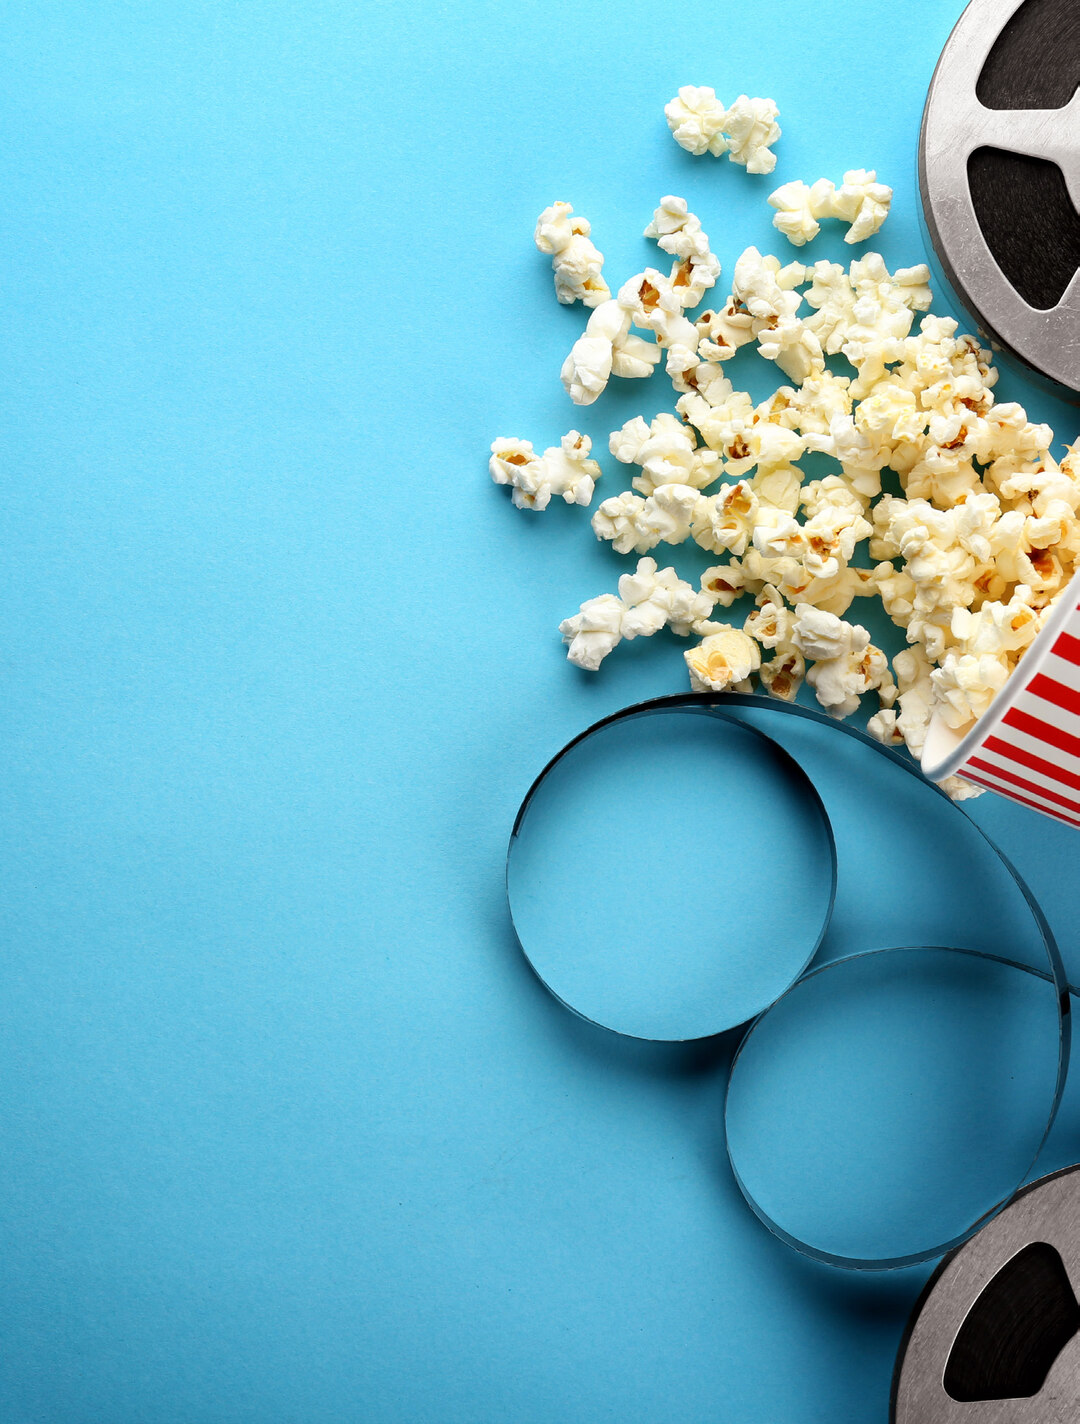 Page 6 of Lights, camera, action! Community Cinemas bring the magic of Hollywood to North Herts